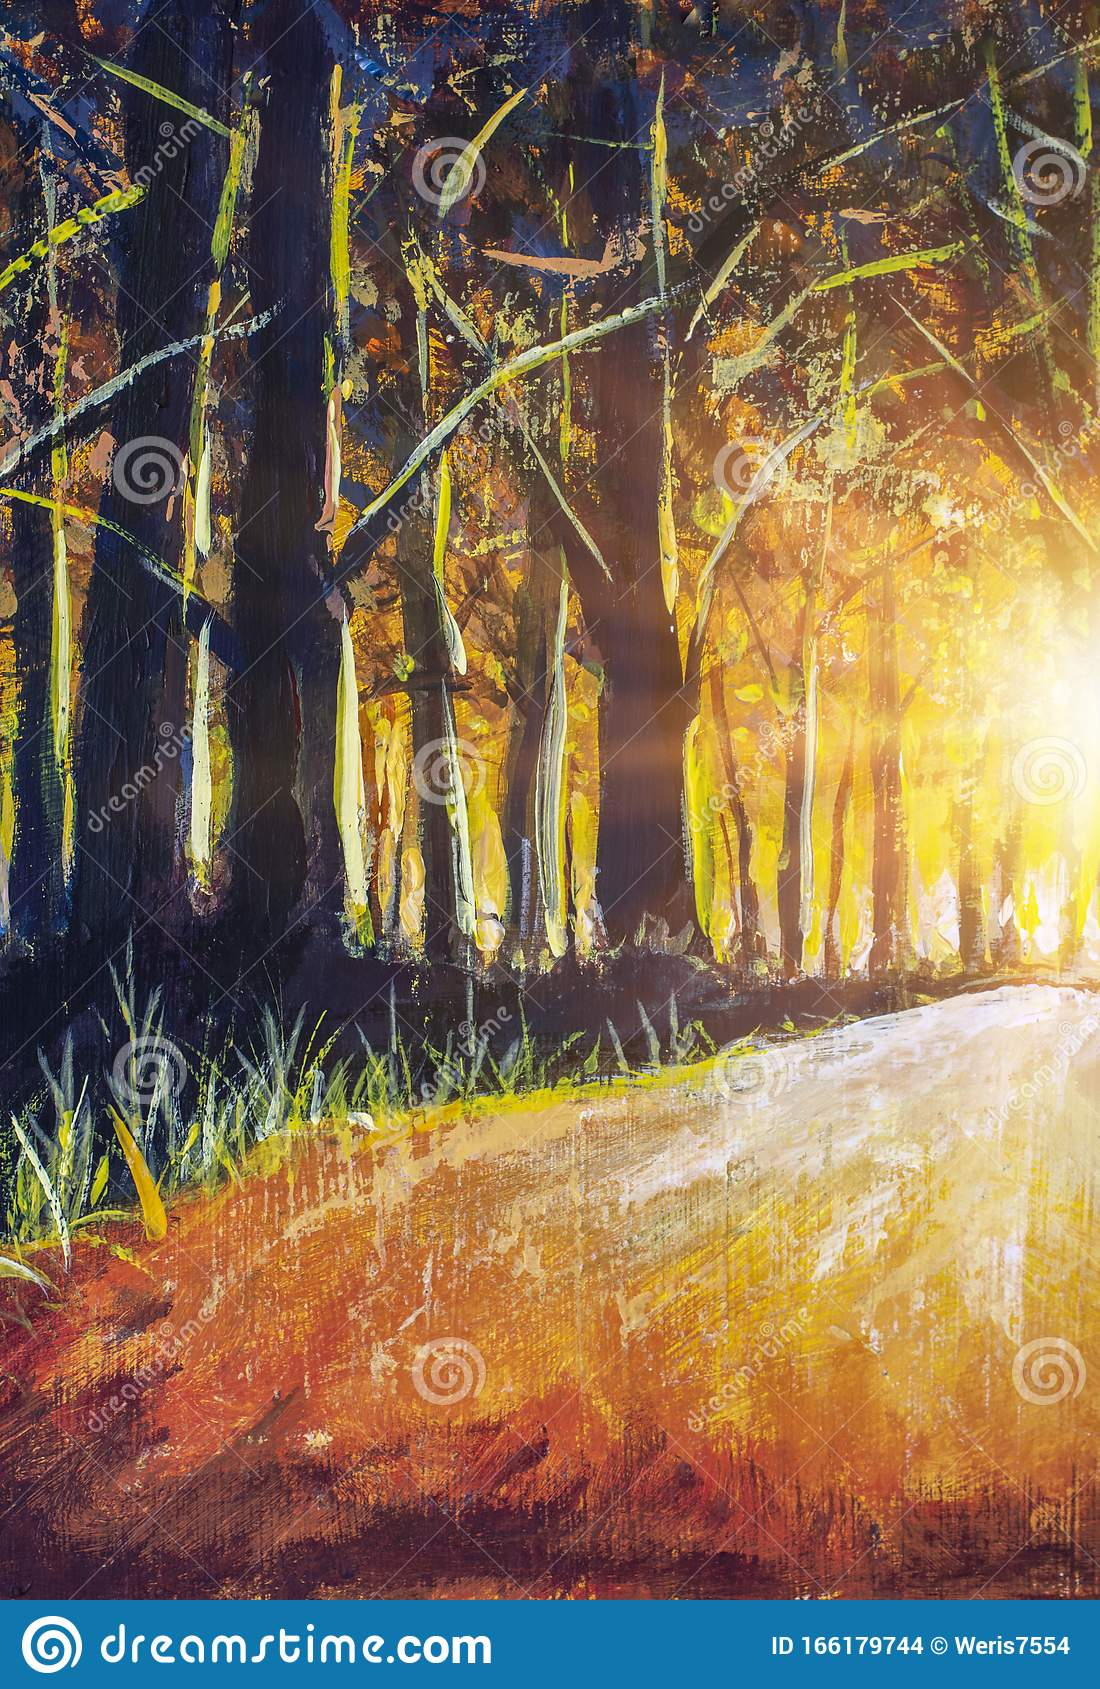 Oil Painting With Watercolor Acrylic Orange Warm Sunrise In Black Forest Black Trees Lit By Hot Sunlight Stock Illustration Illustration Of Fall Branch 166179744